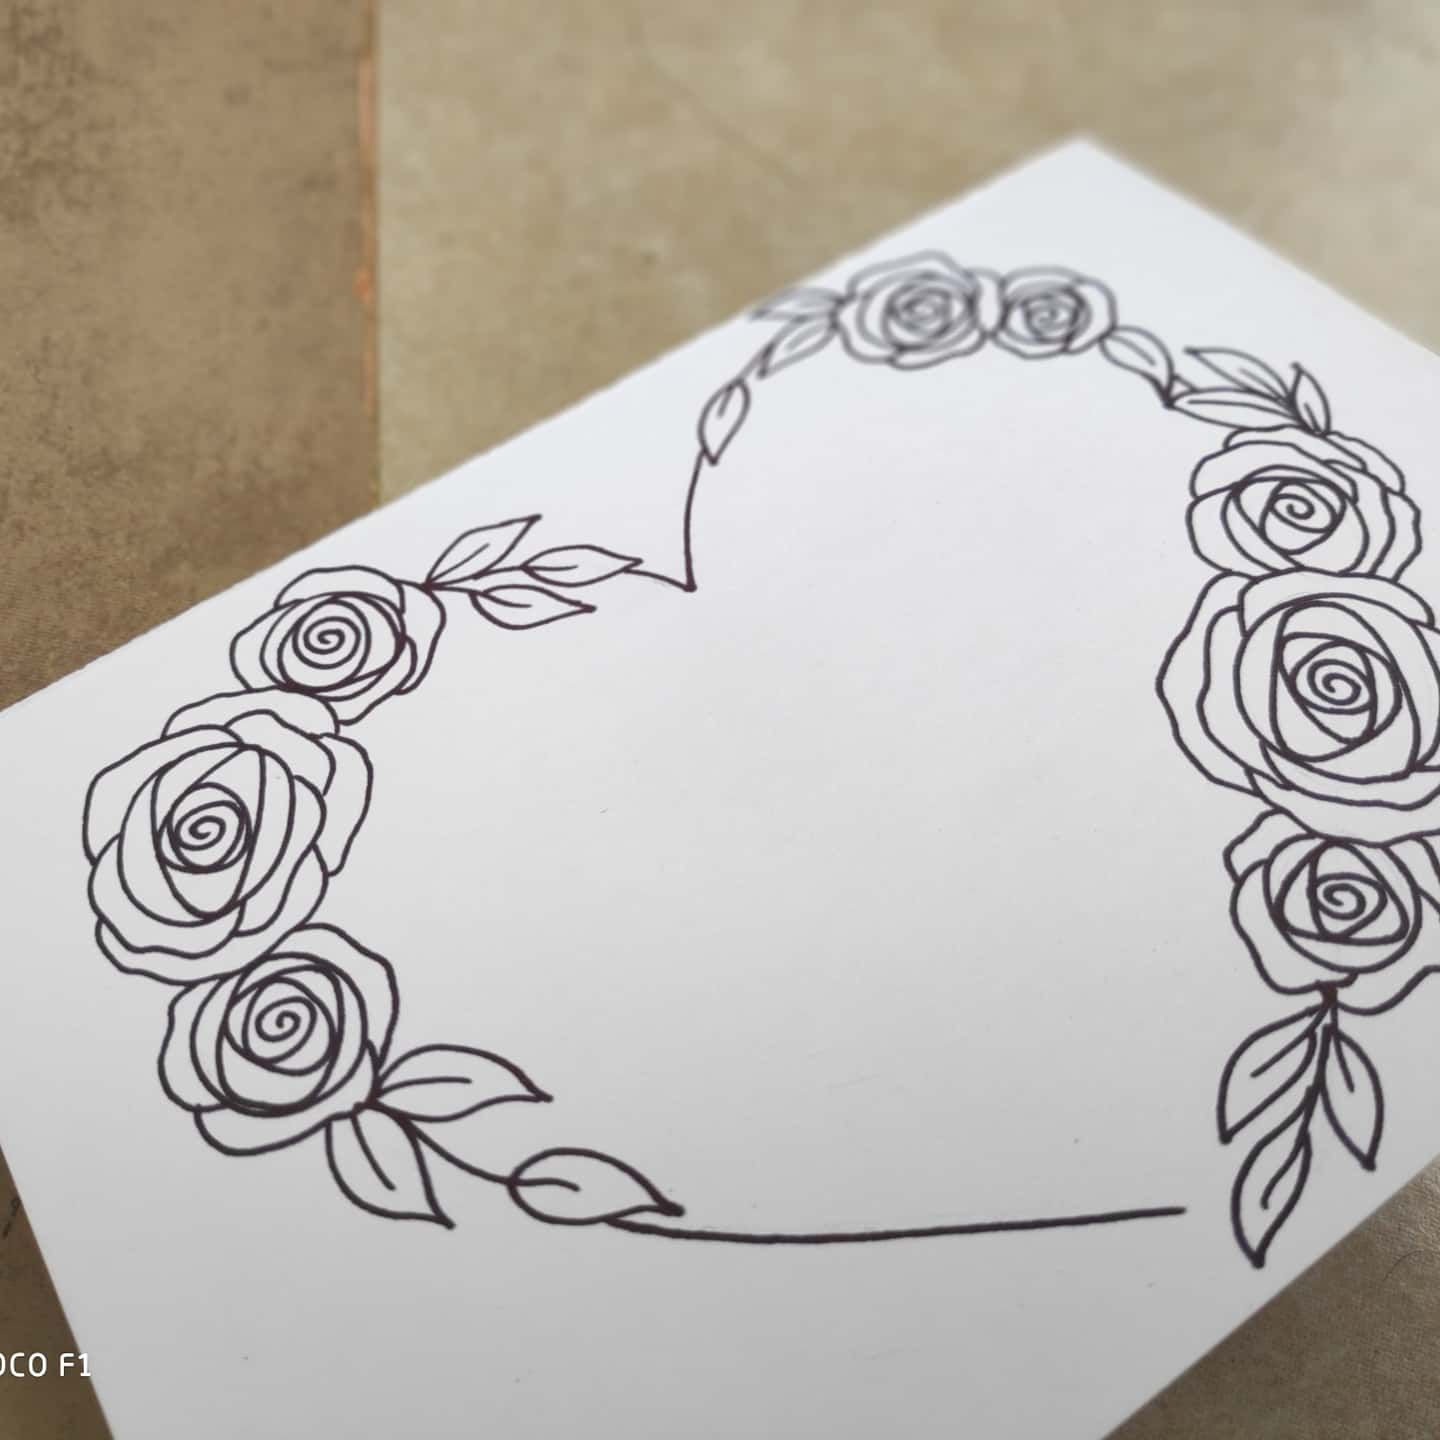 Easy Rose Drawing Floral Border Rose Drawing Simple Card Drawing Rose Drawing